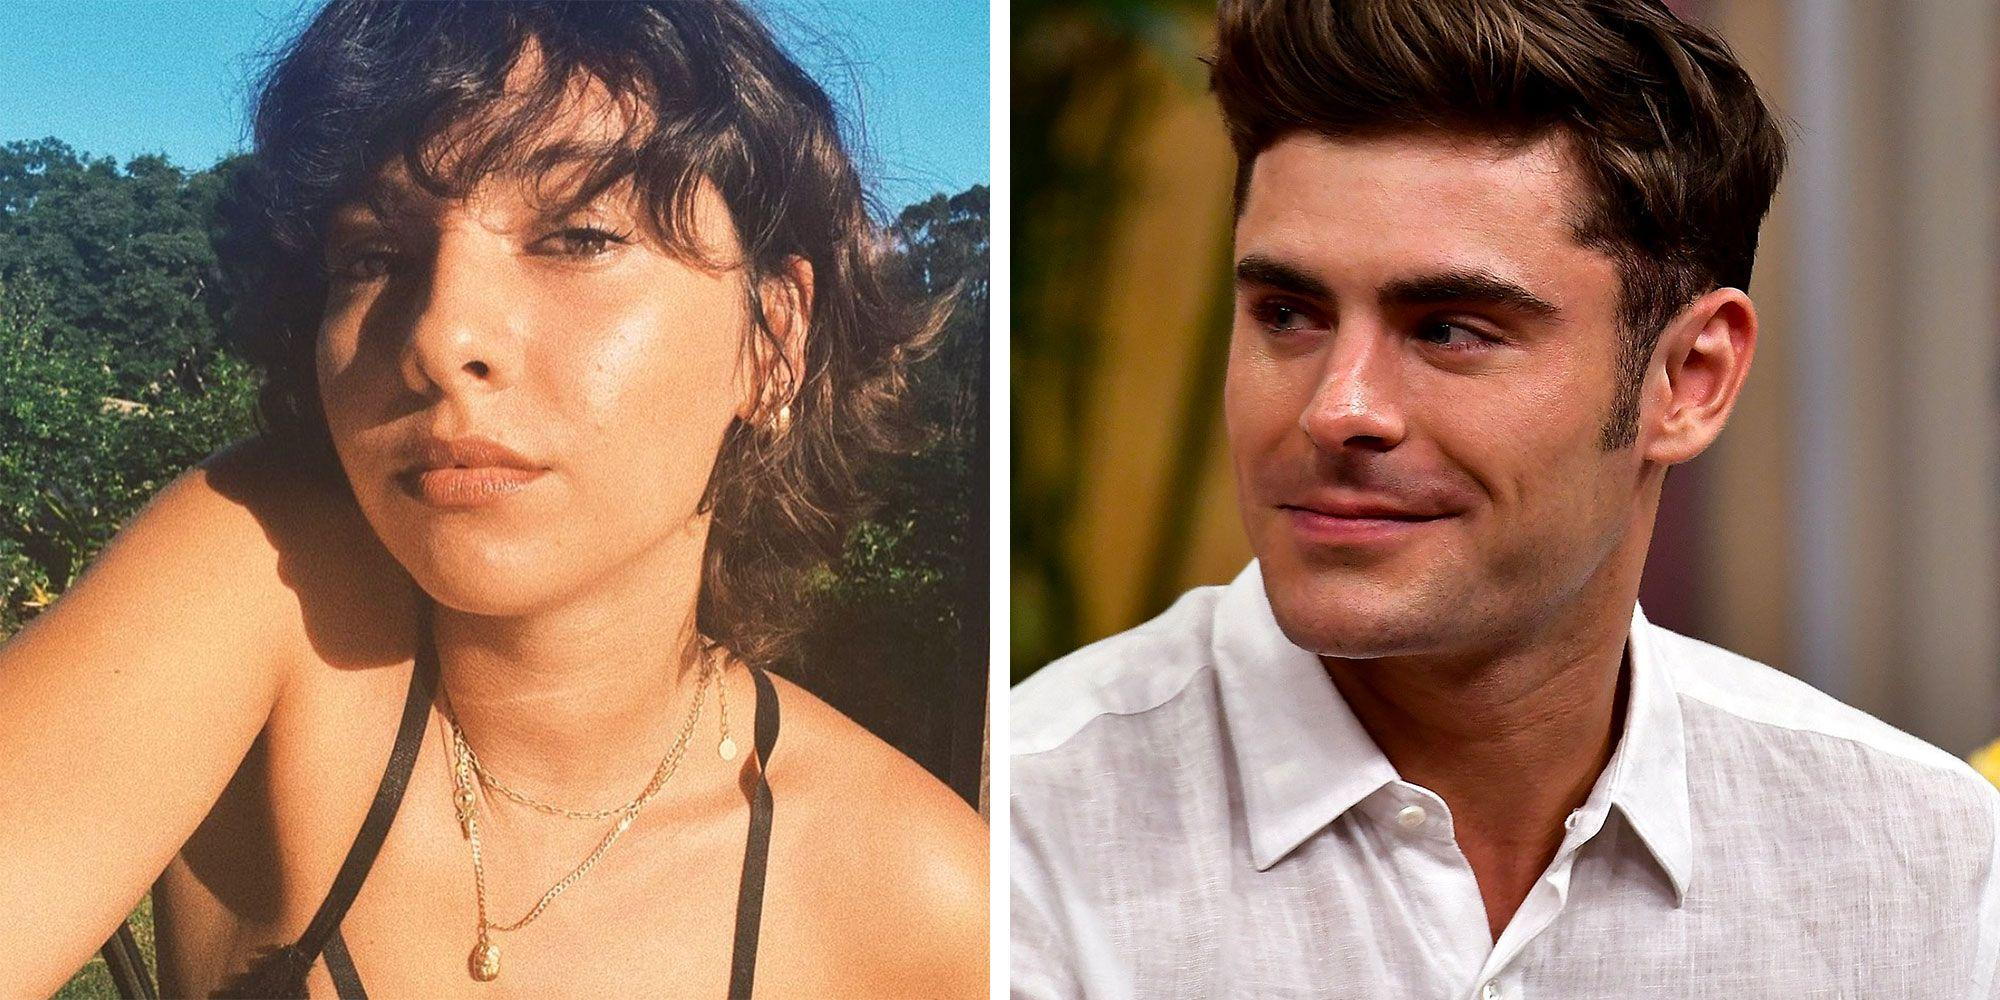 Zac Efron And Vanessa Valladares Are No Longer An Item - Insider Details!